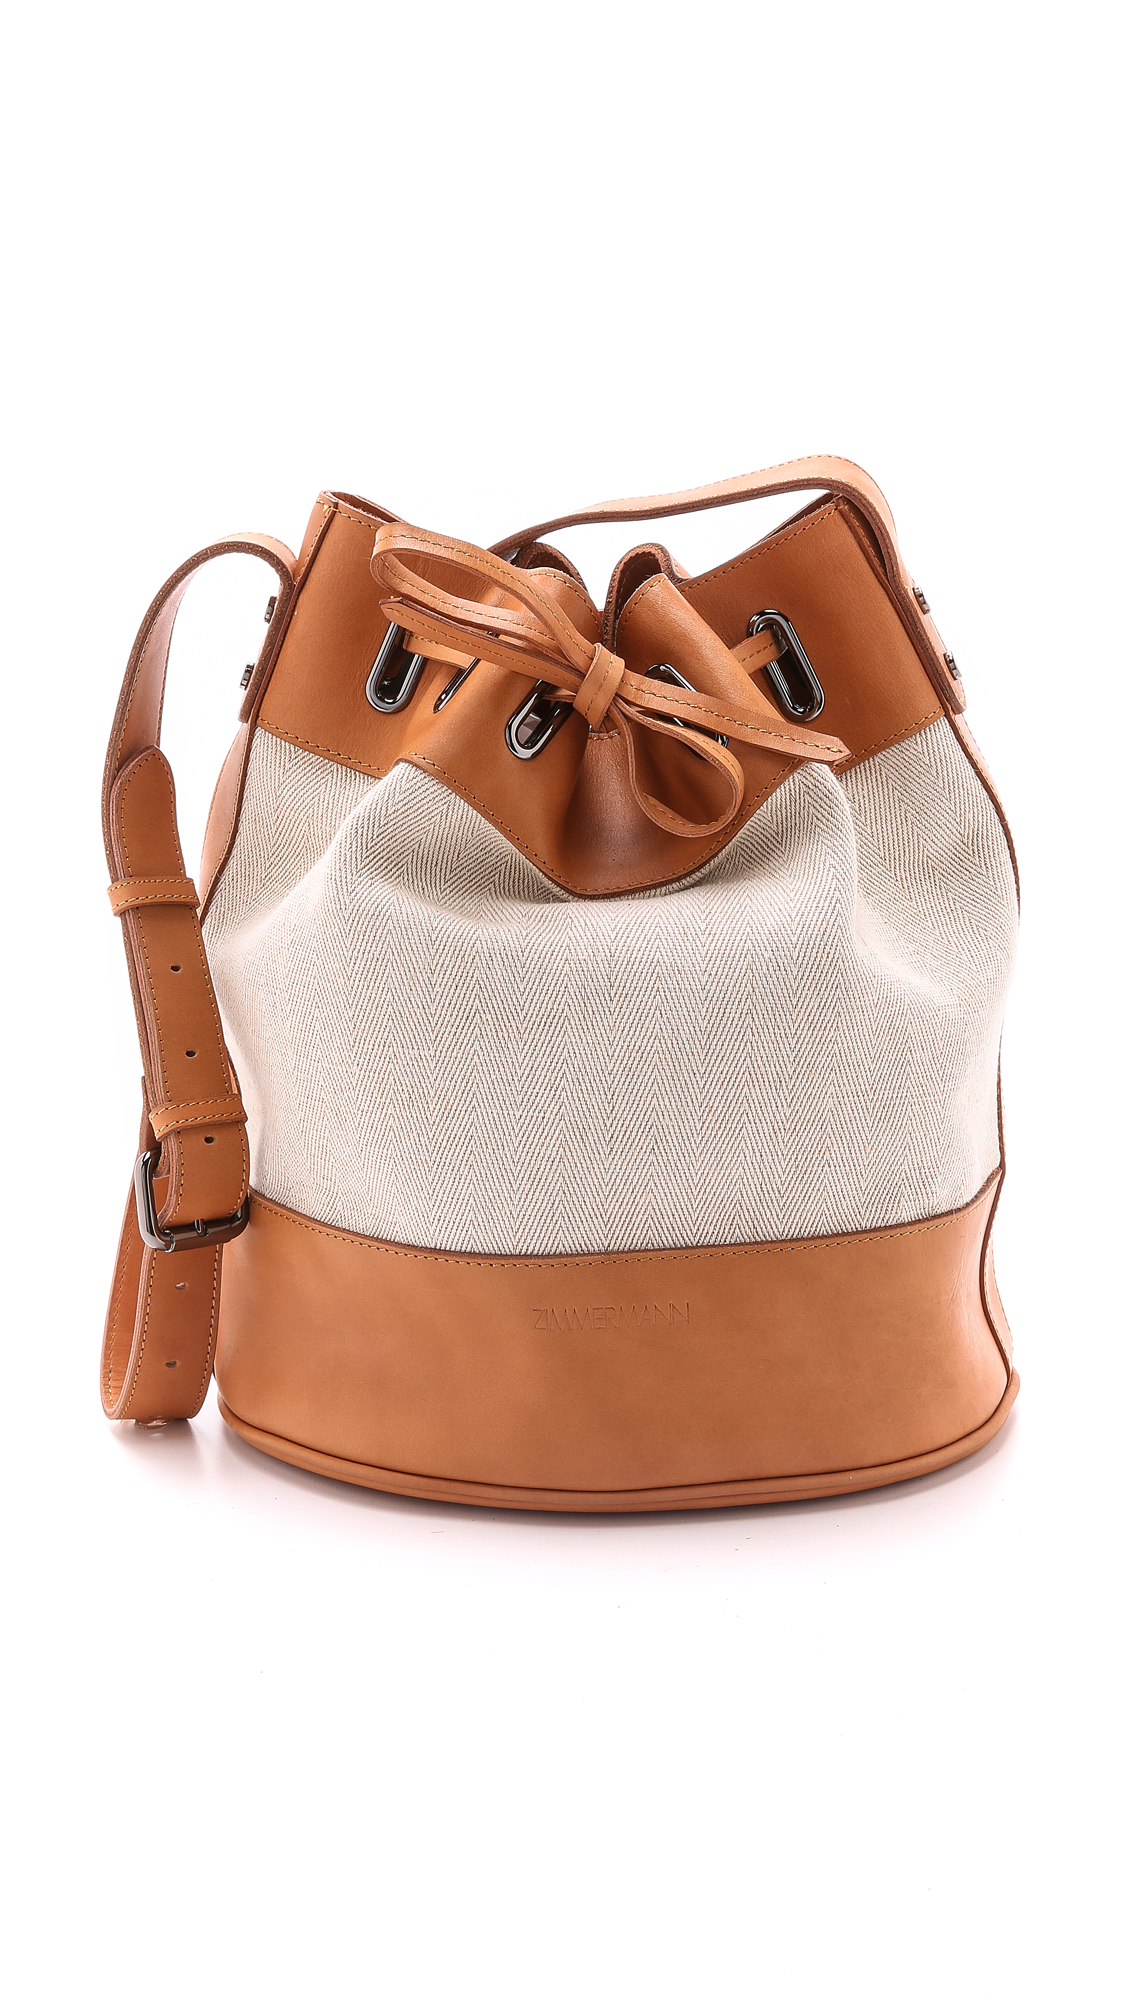 Zimmermann Drawstring Beach Bucket Bag - Tan in Brown | Lyst